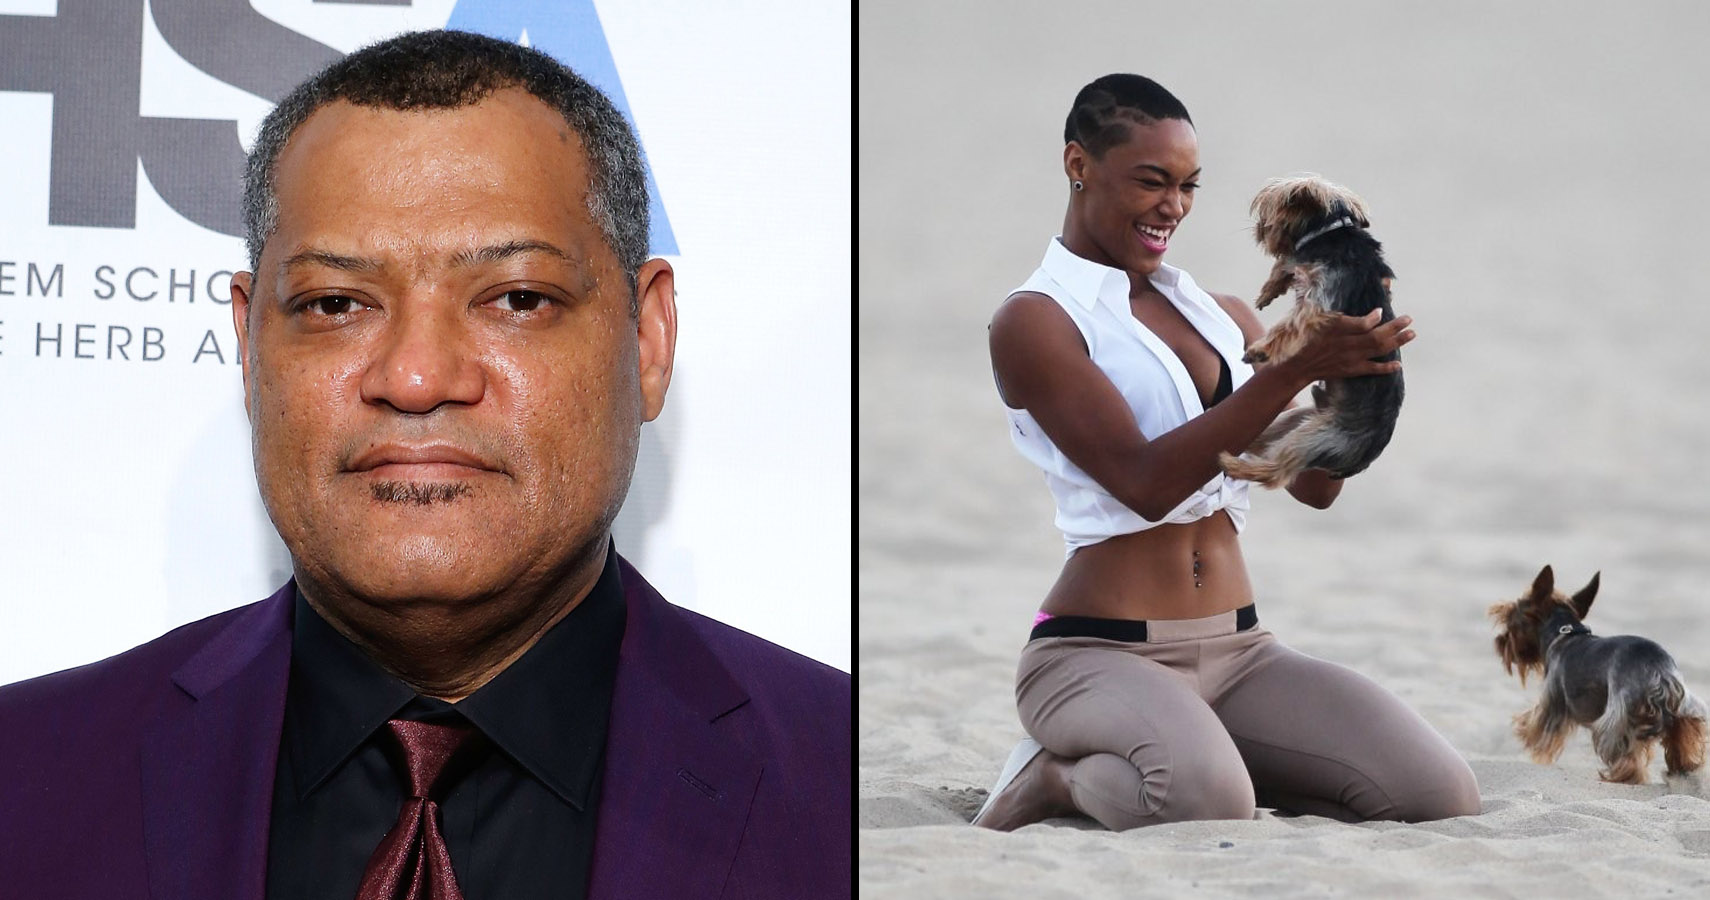 laurence fishburne daughter porn video